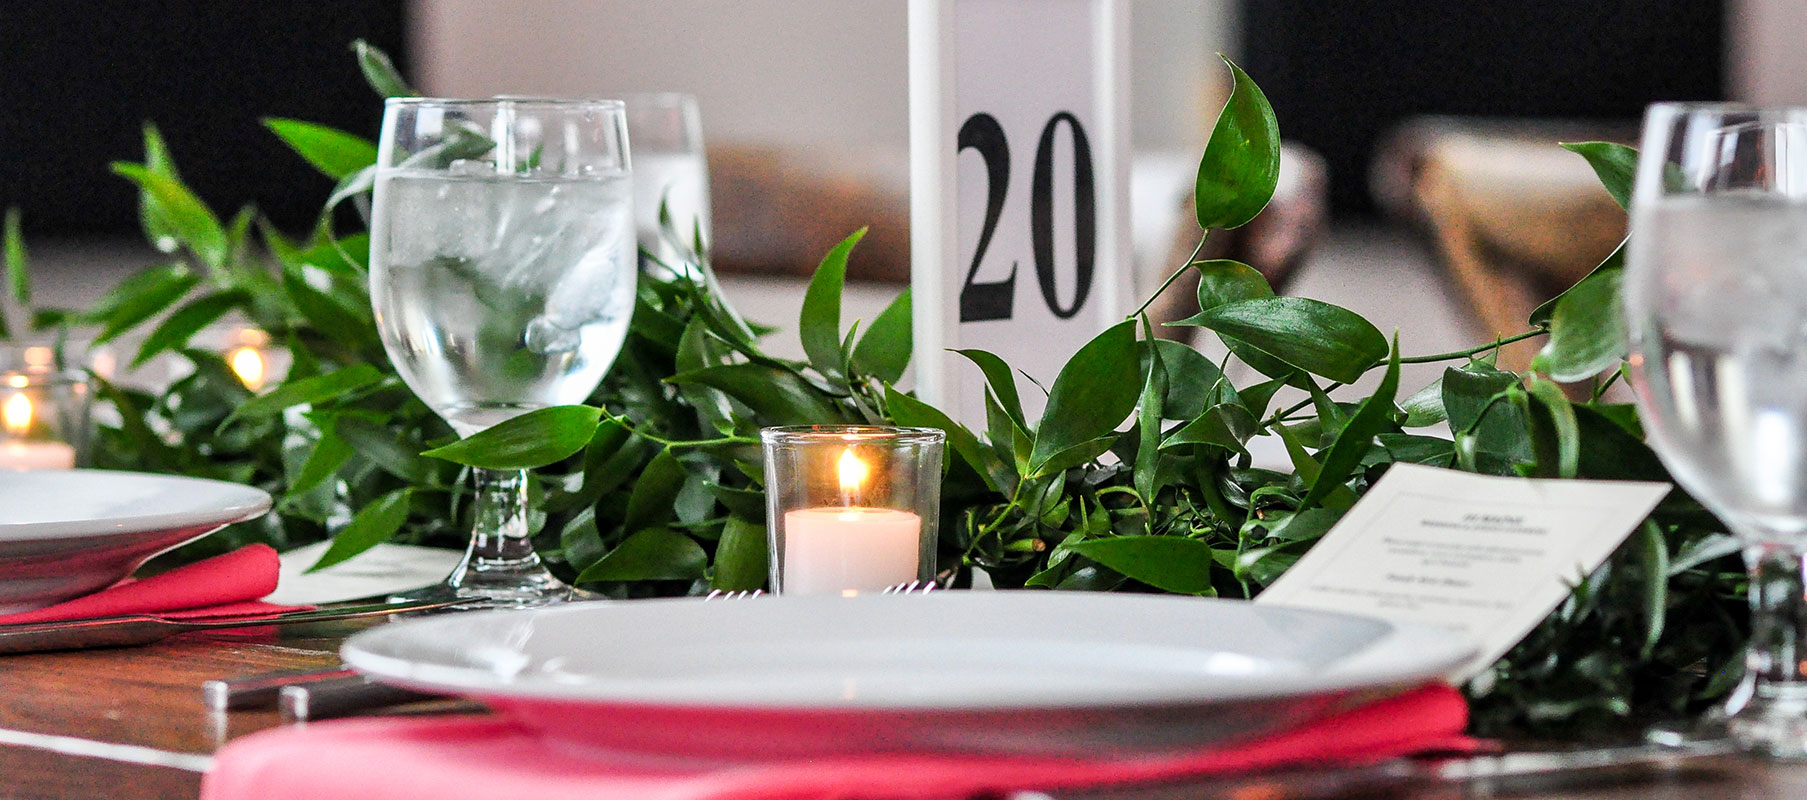 NYA Soiree 2019 table setting